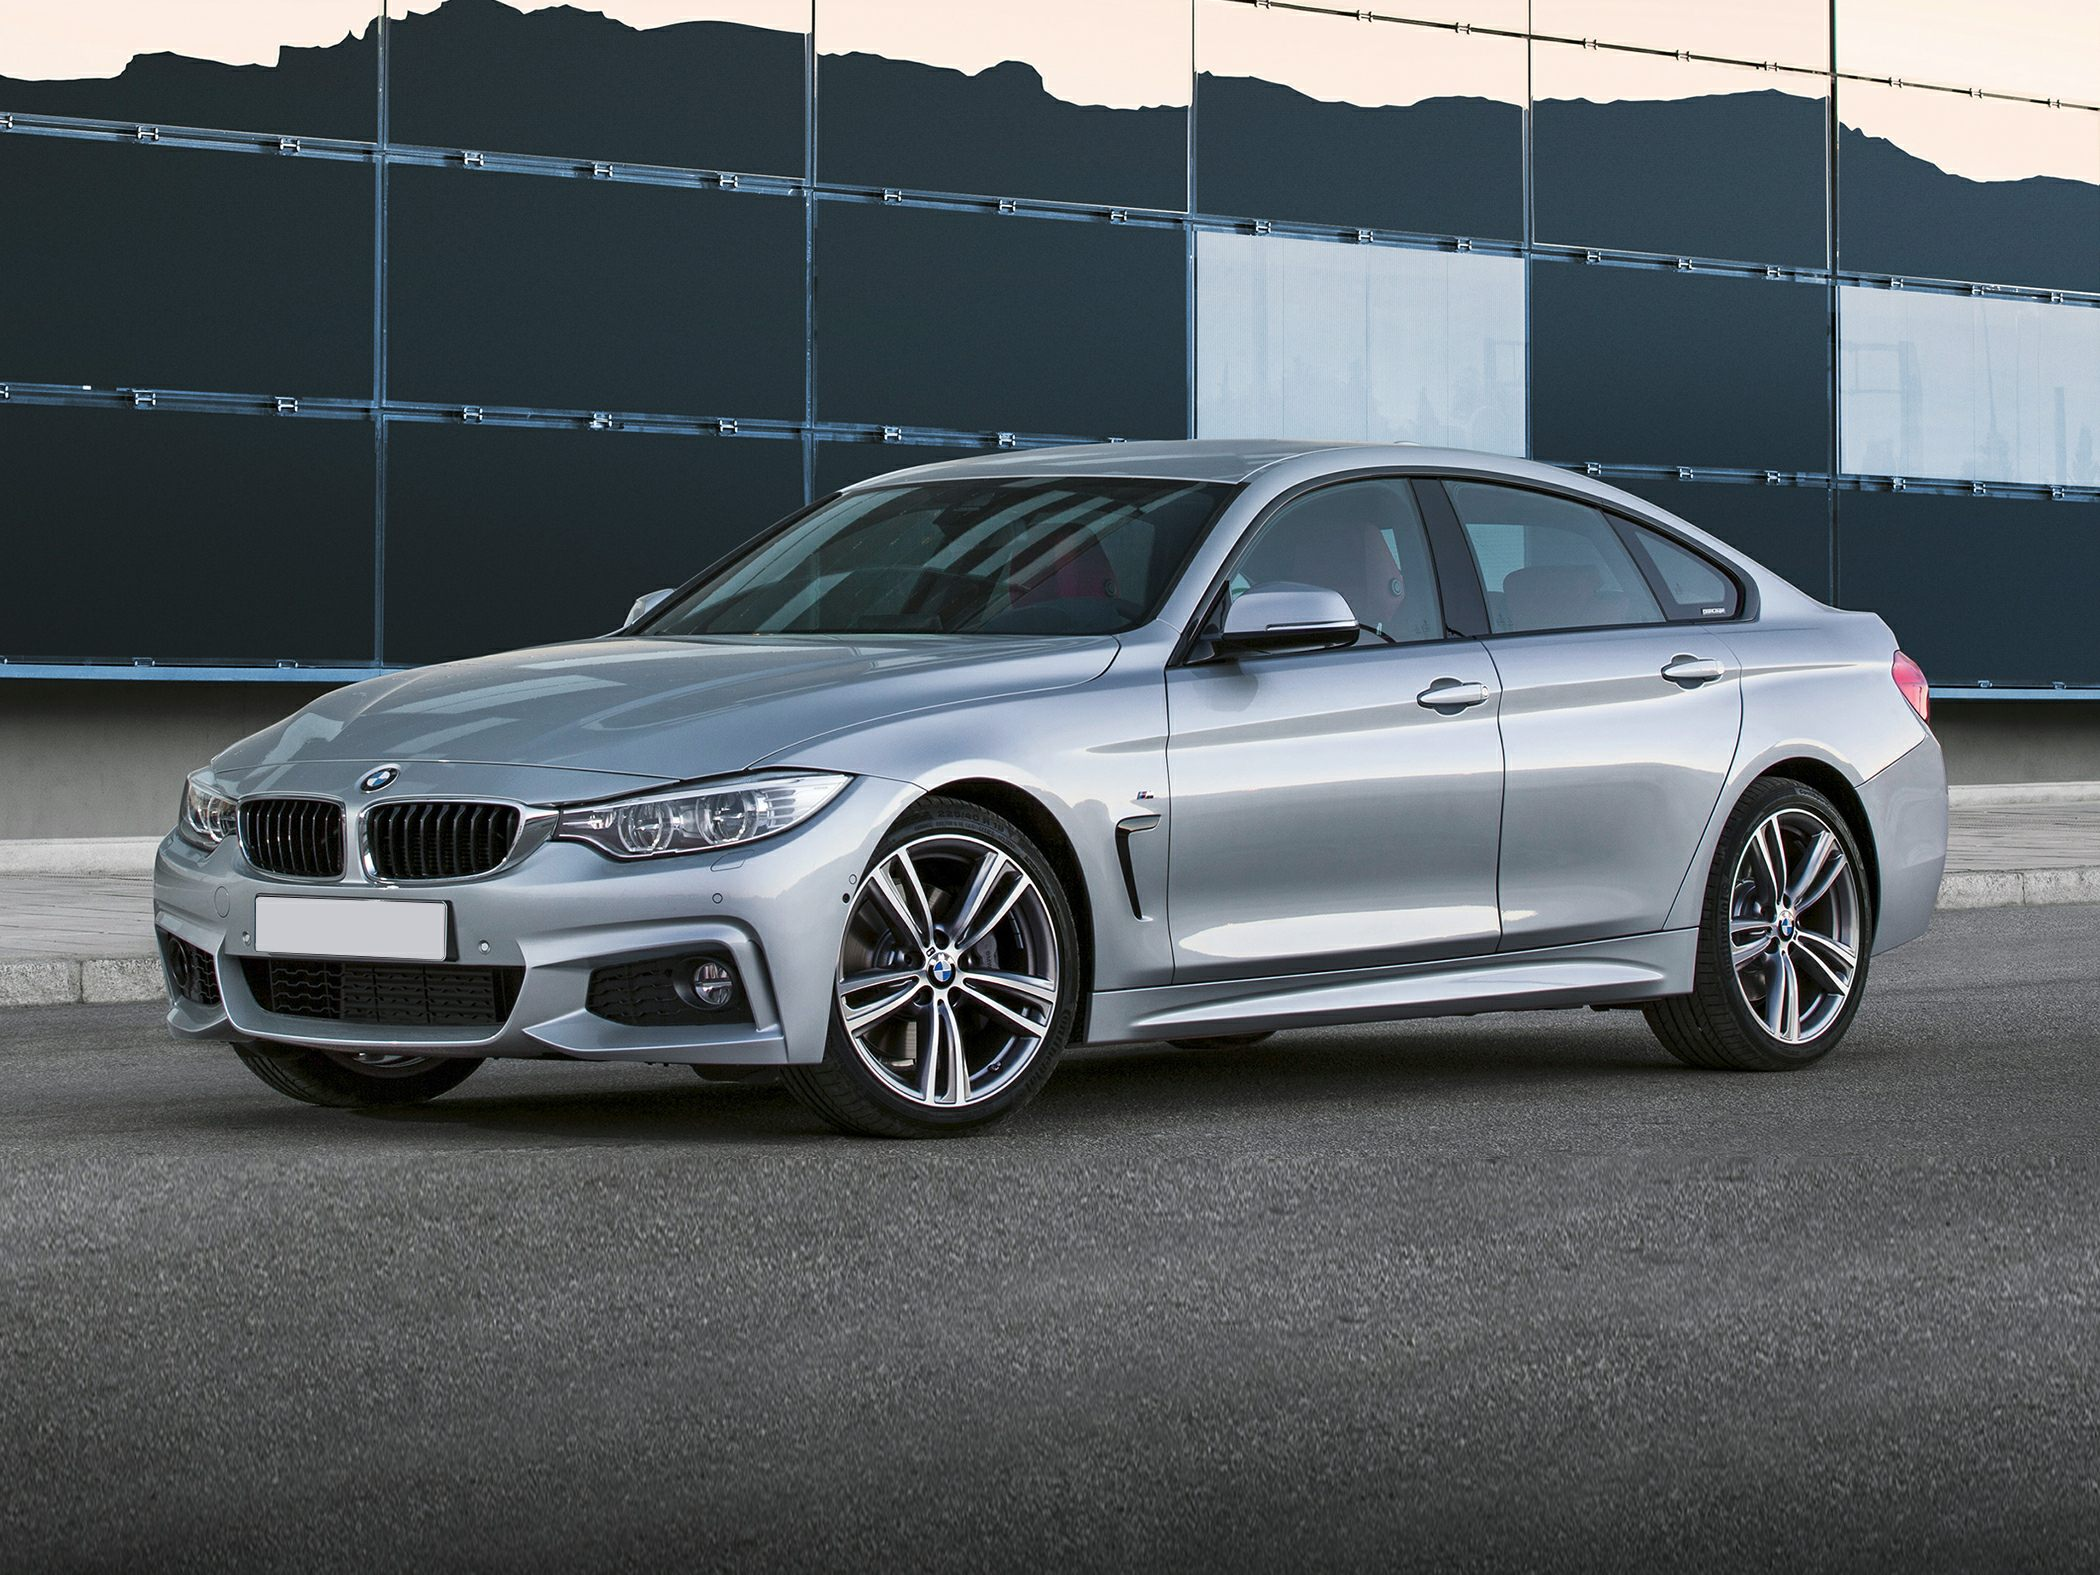 2017 bmw 440 gran coupe deals prices incentives leases overview carsdirect. Black Bedroom Furniture Sets. Home Design Ideas